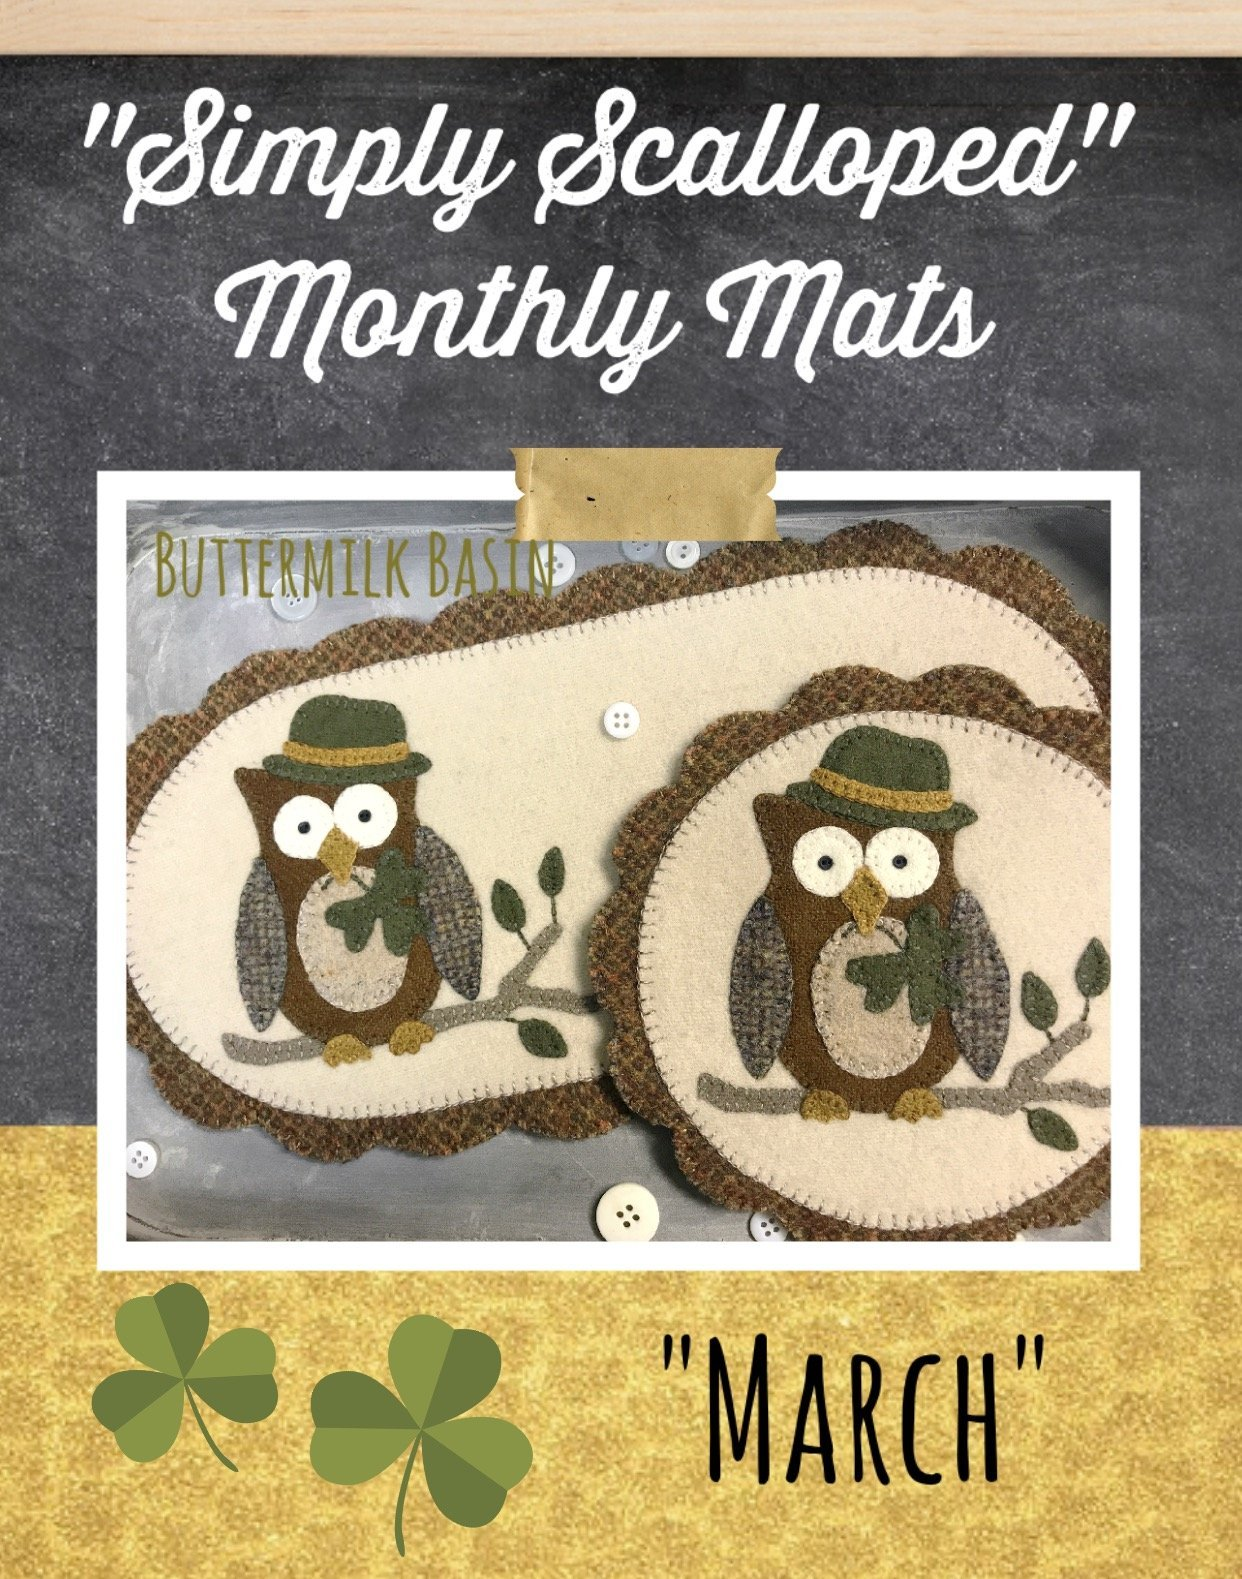 Simply Scalloped - March Owls